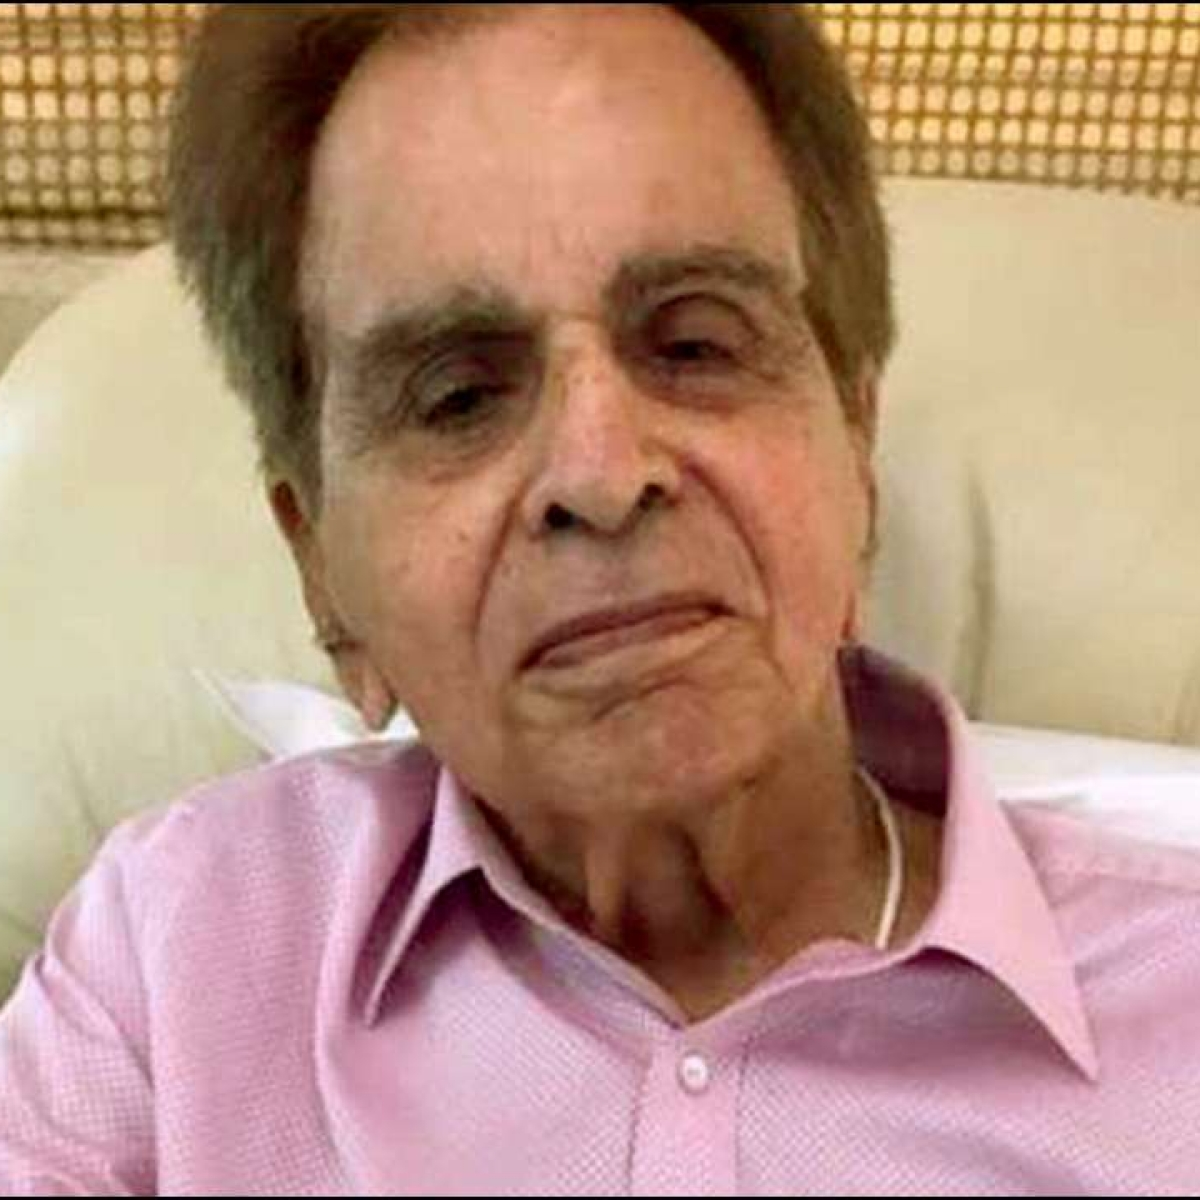 Pakistan to purchase Dilip Kumar's home in Peshawar to convert it into a museum